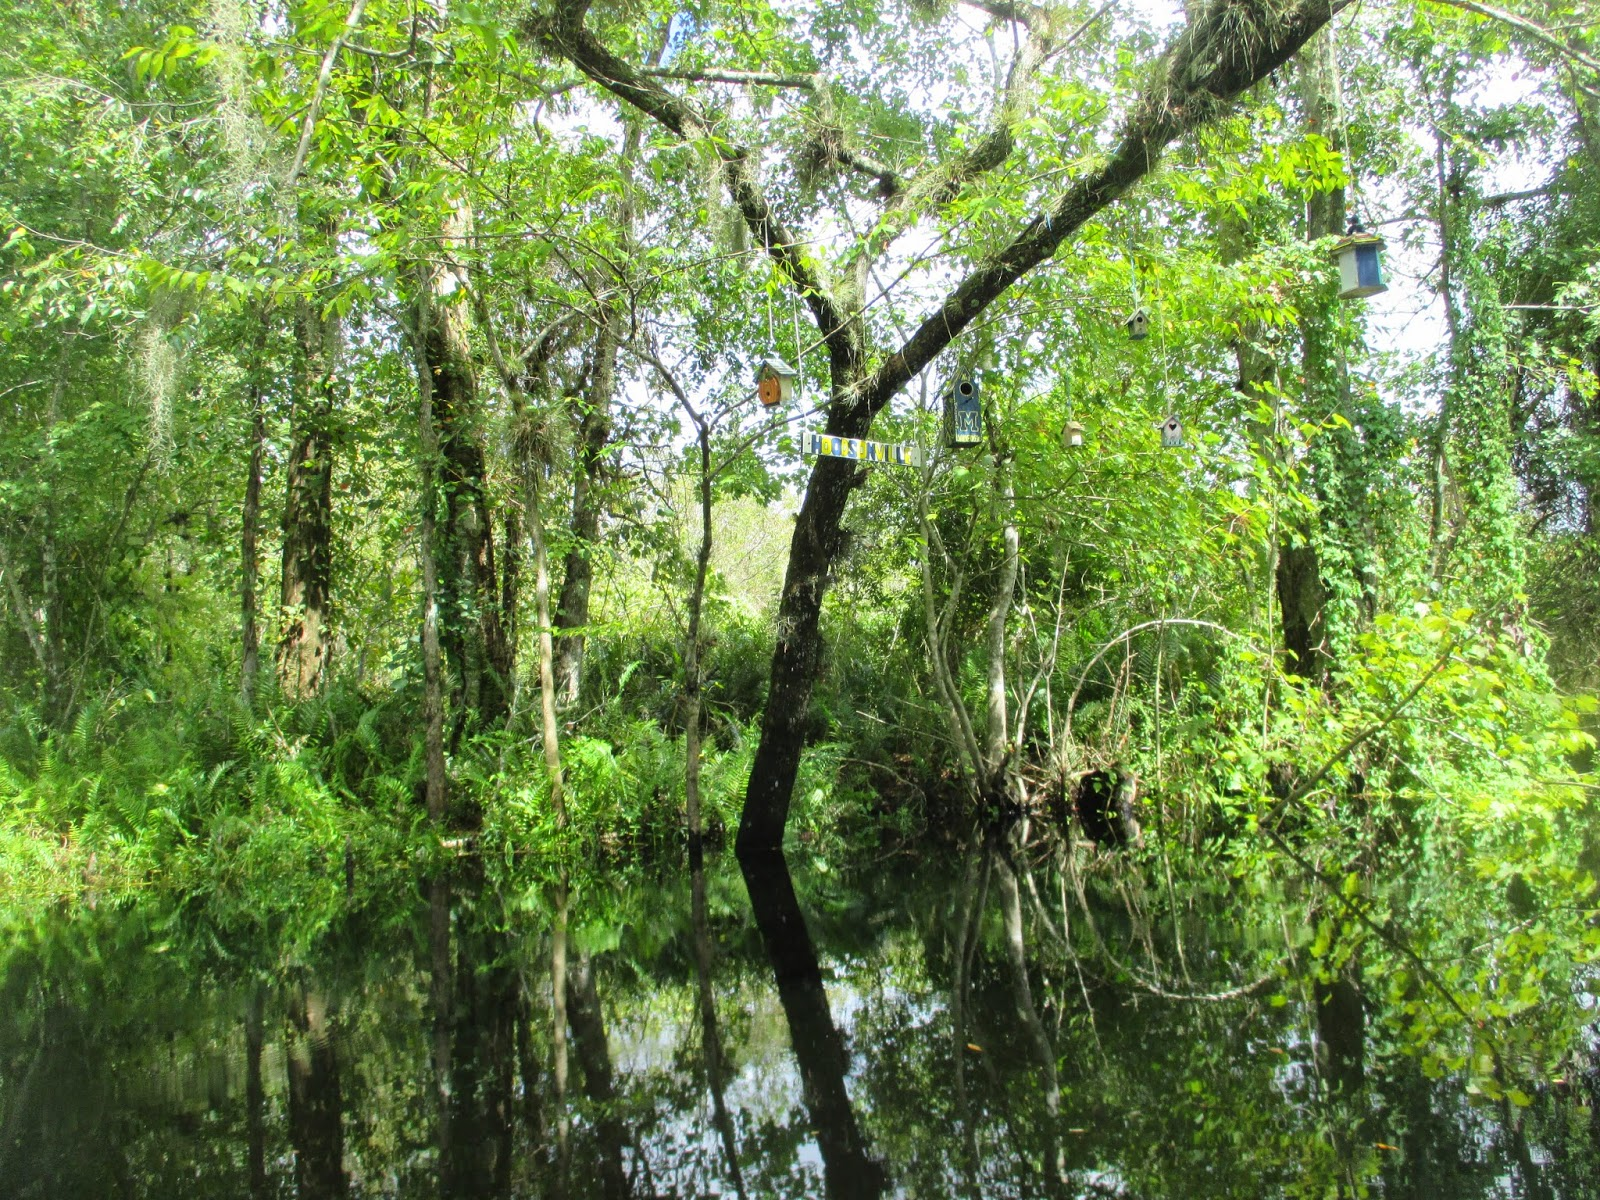 Florida Snakehead Fishing in South Florida Urban Canals